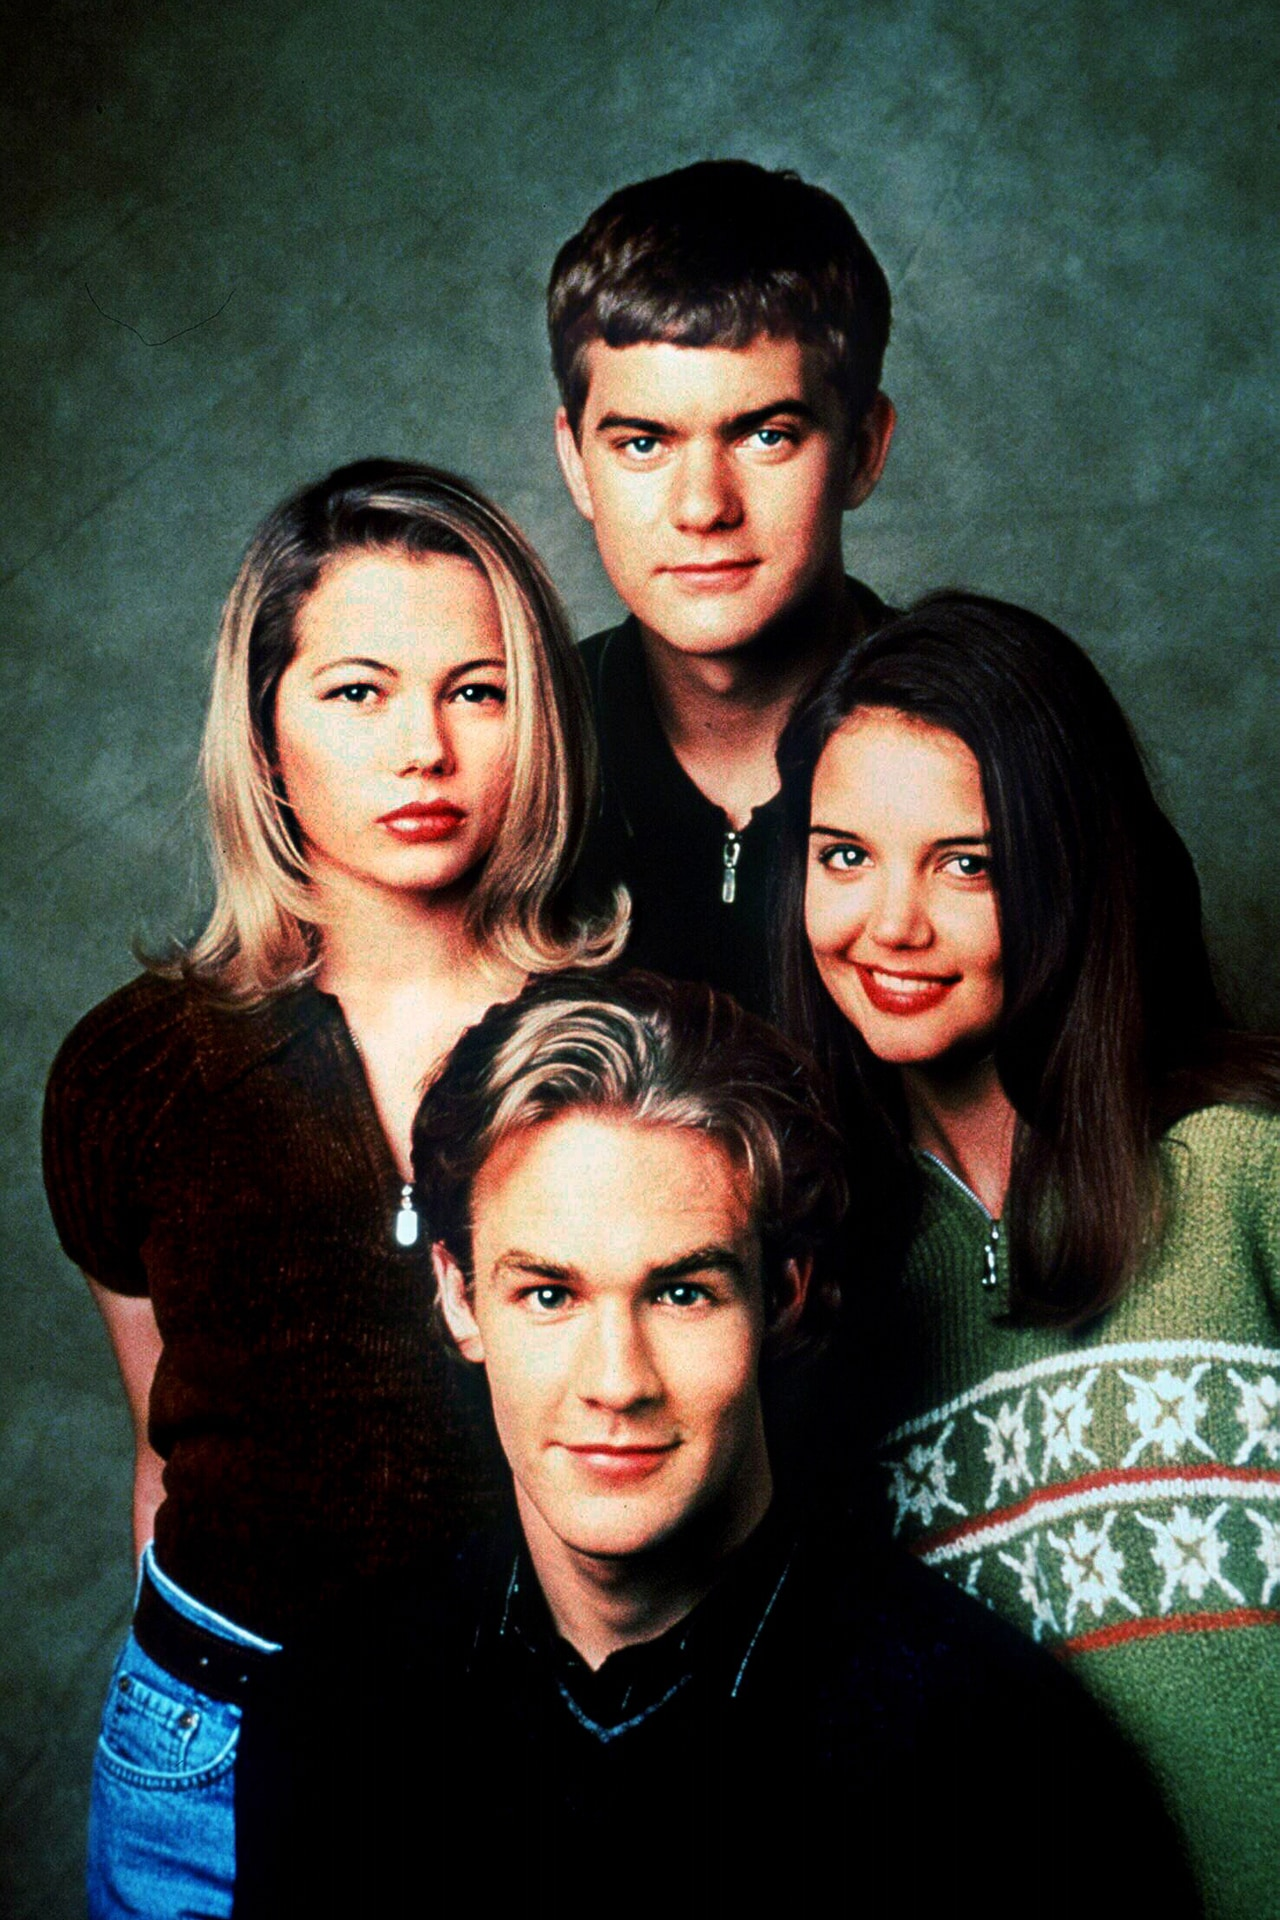 The Dawson's Creek cast just reunited and it feels like 1998 again